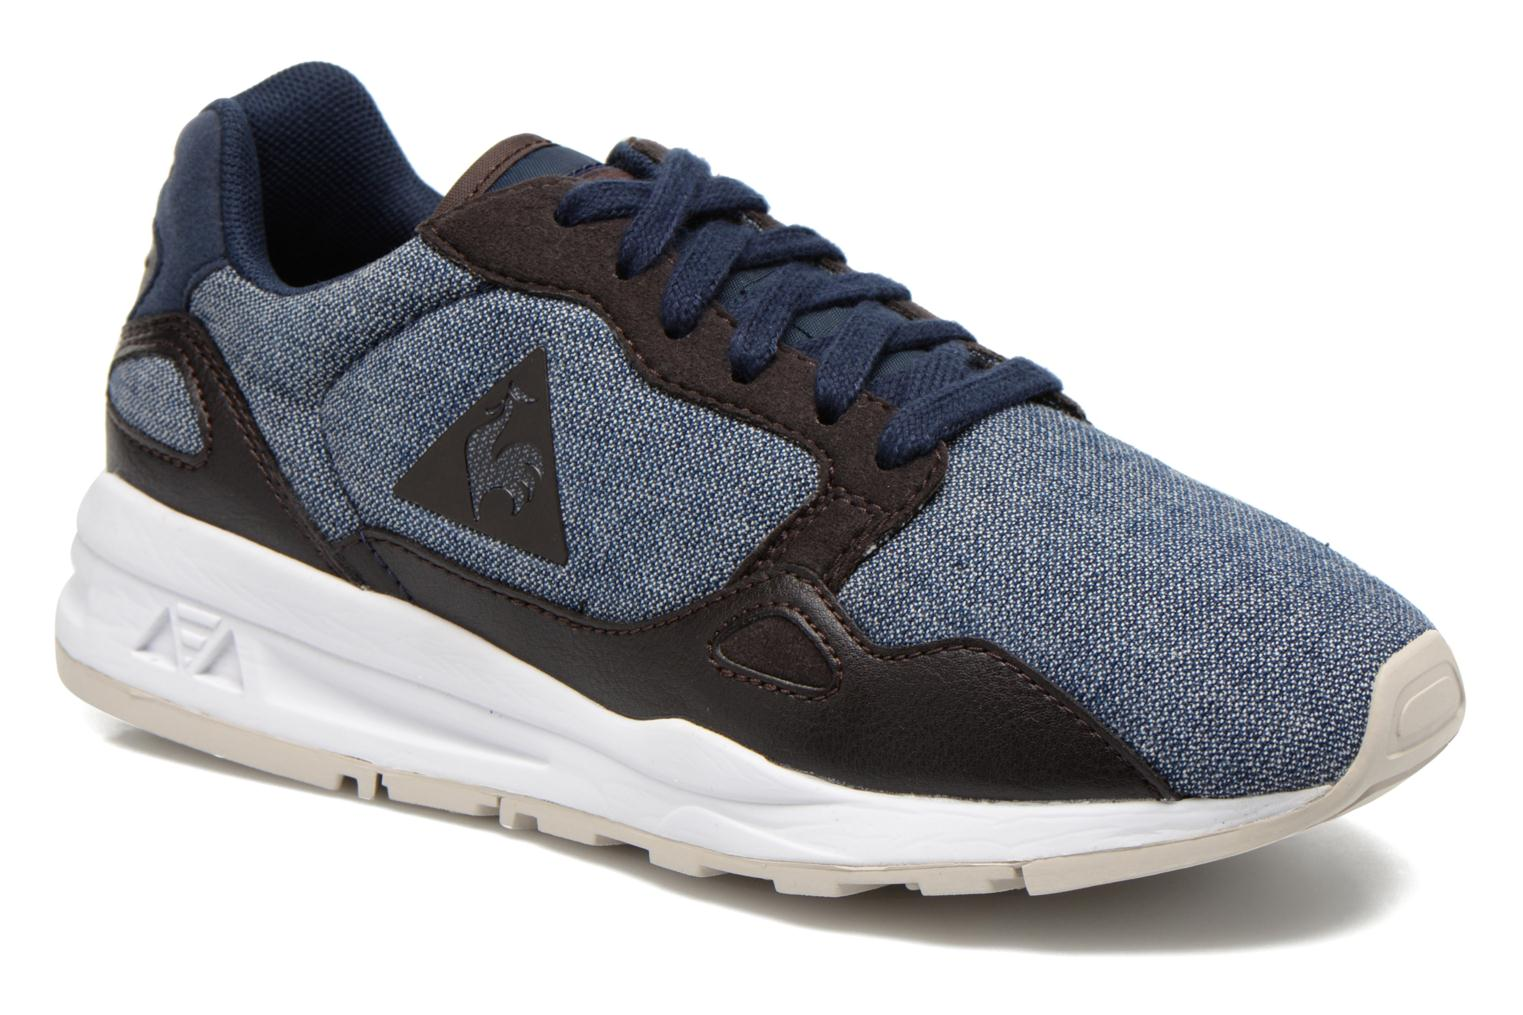 Sneakers LCS R900 GS Craft by Le Coq Sportif